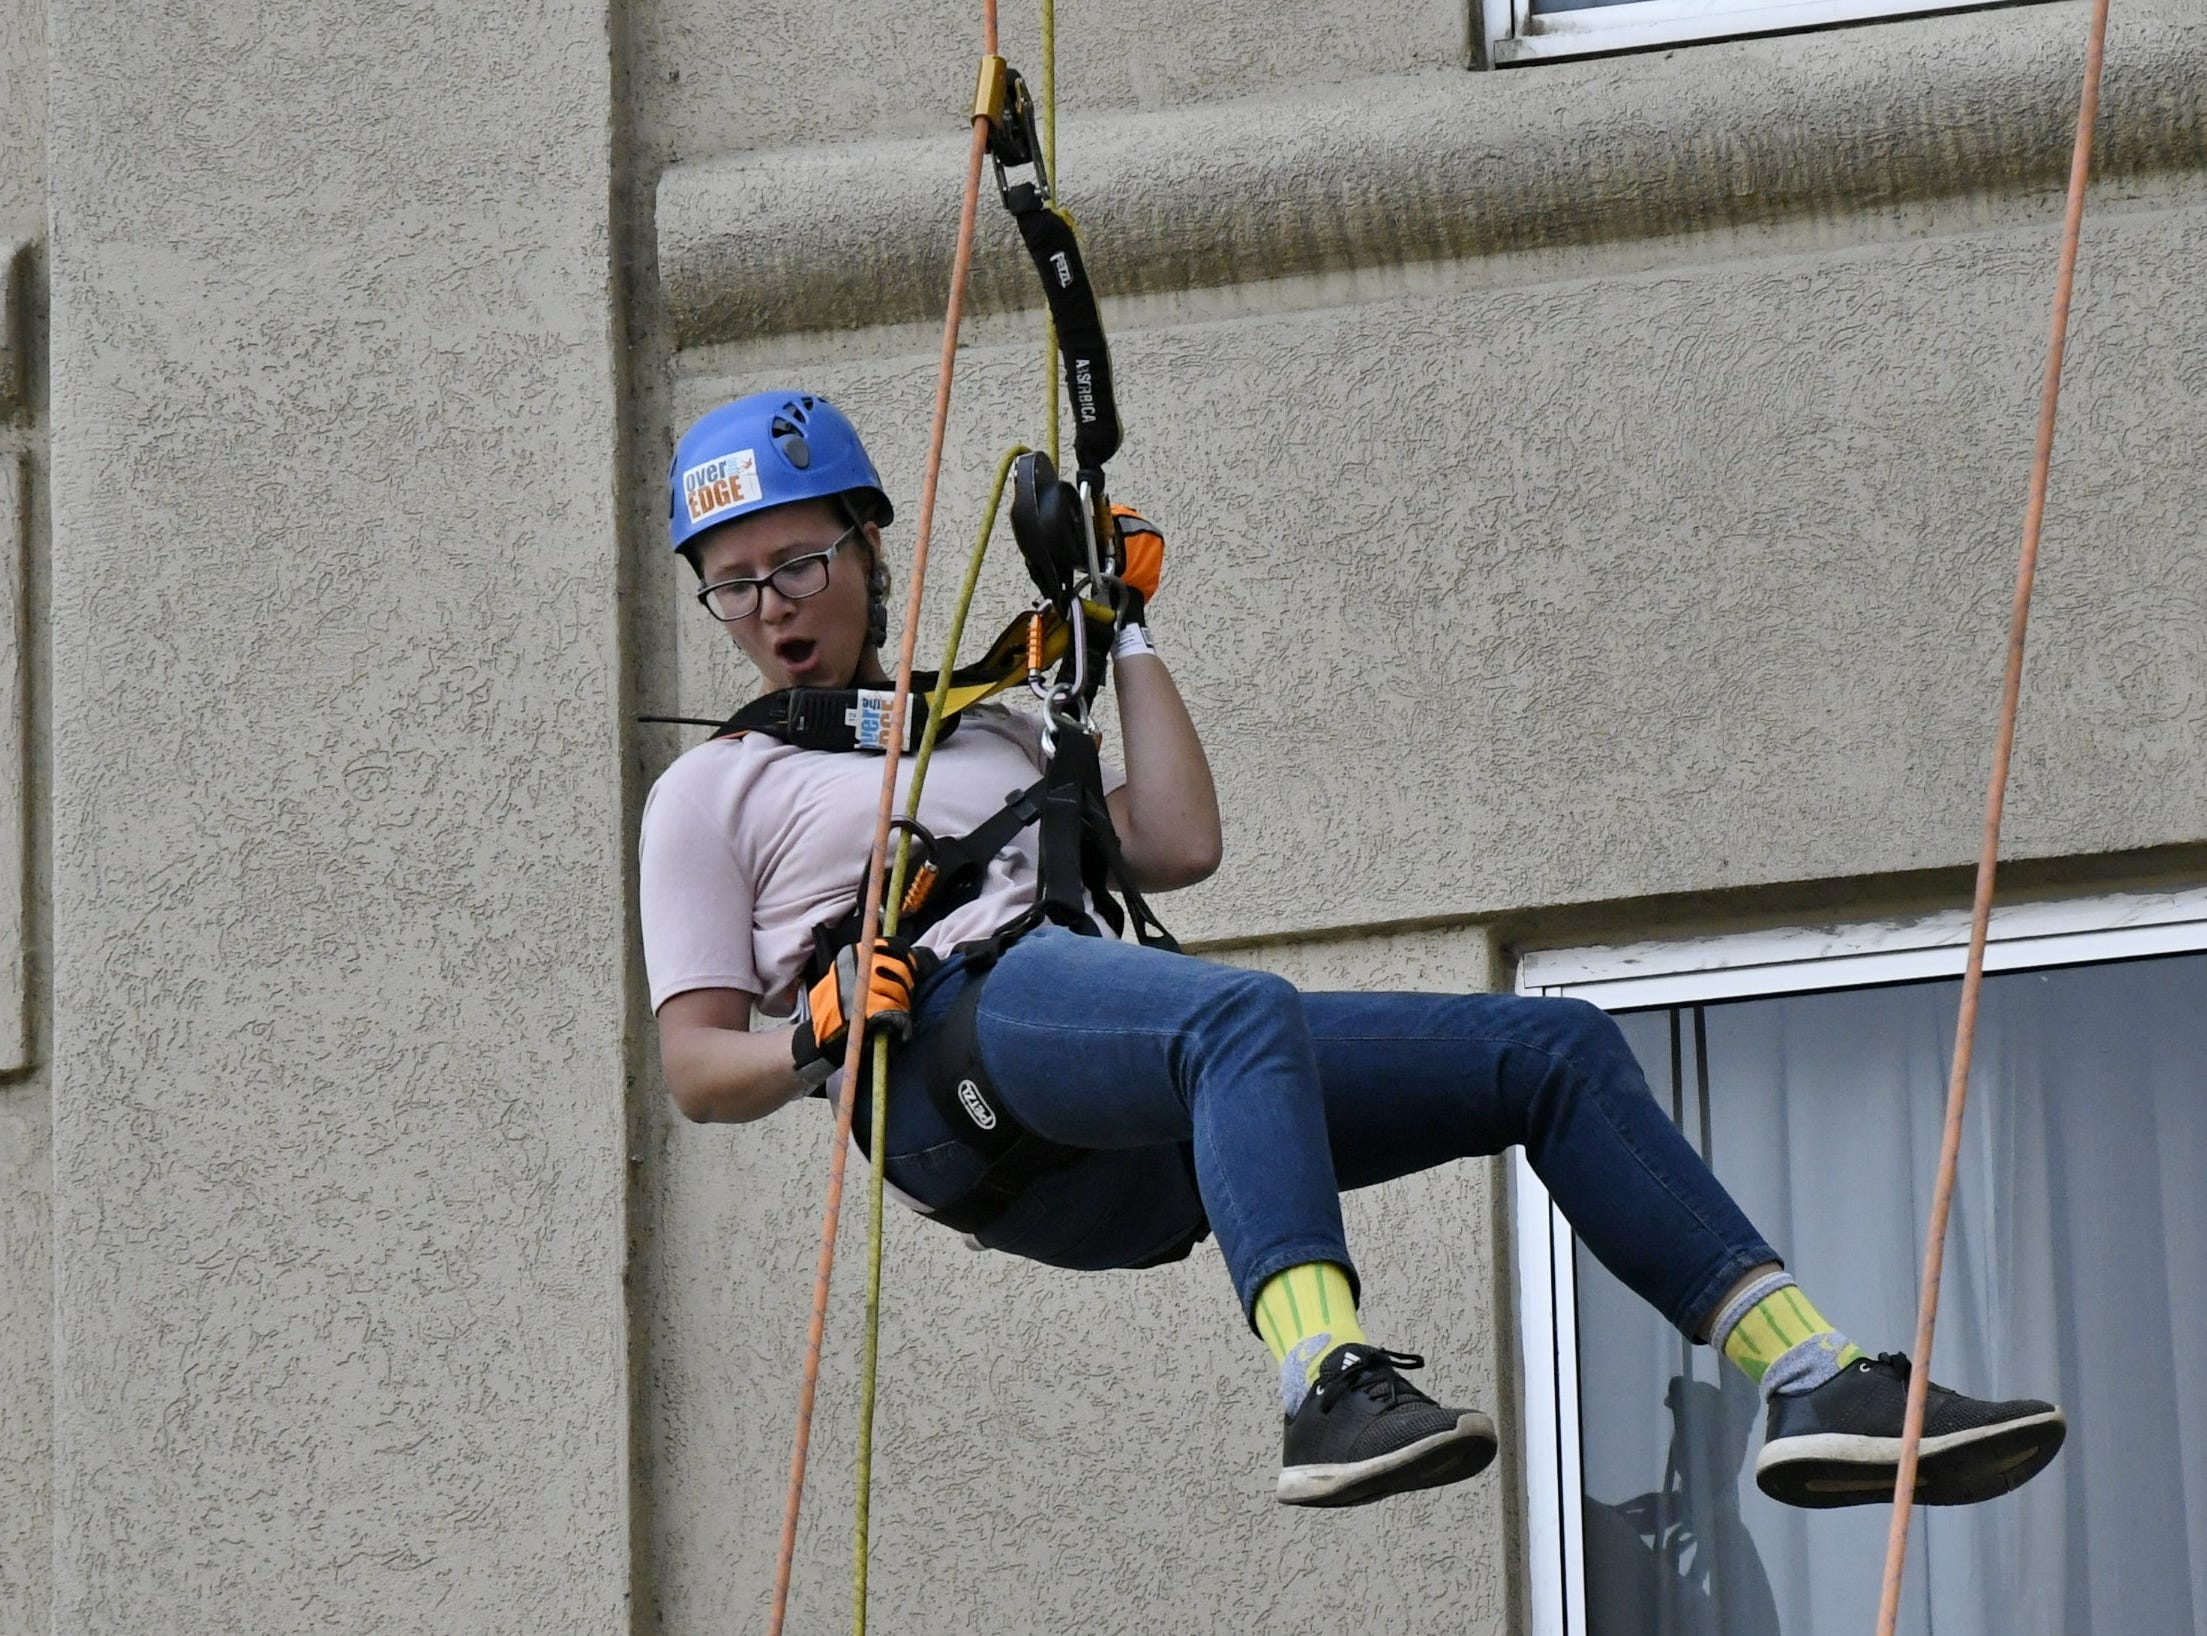 Mary West rappels down the side of the Visalia Marriott at the Convention Center in downtown Visalia for the first Over the Edge fundraising event for The Source LGBT+ Center on Saturday, November 10, 2018.